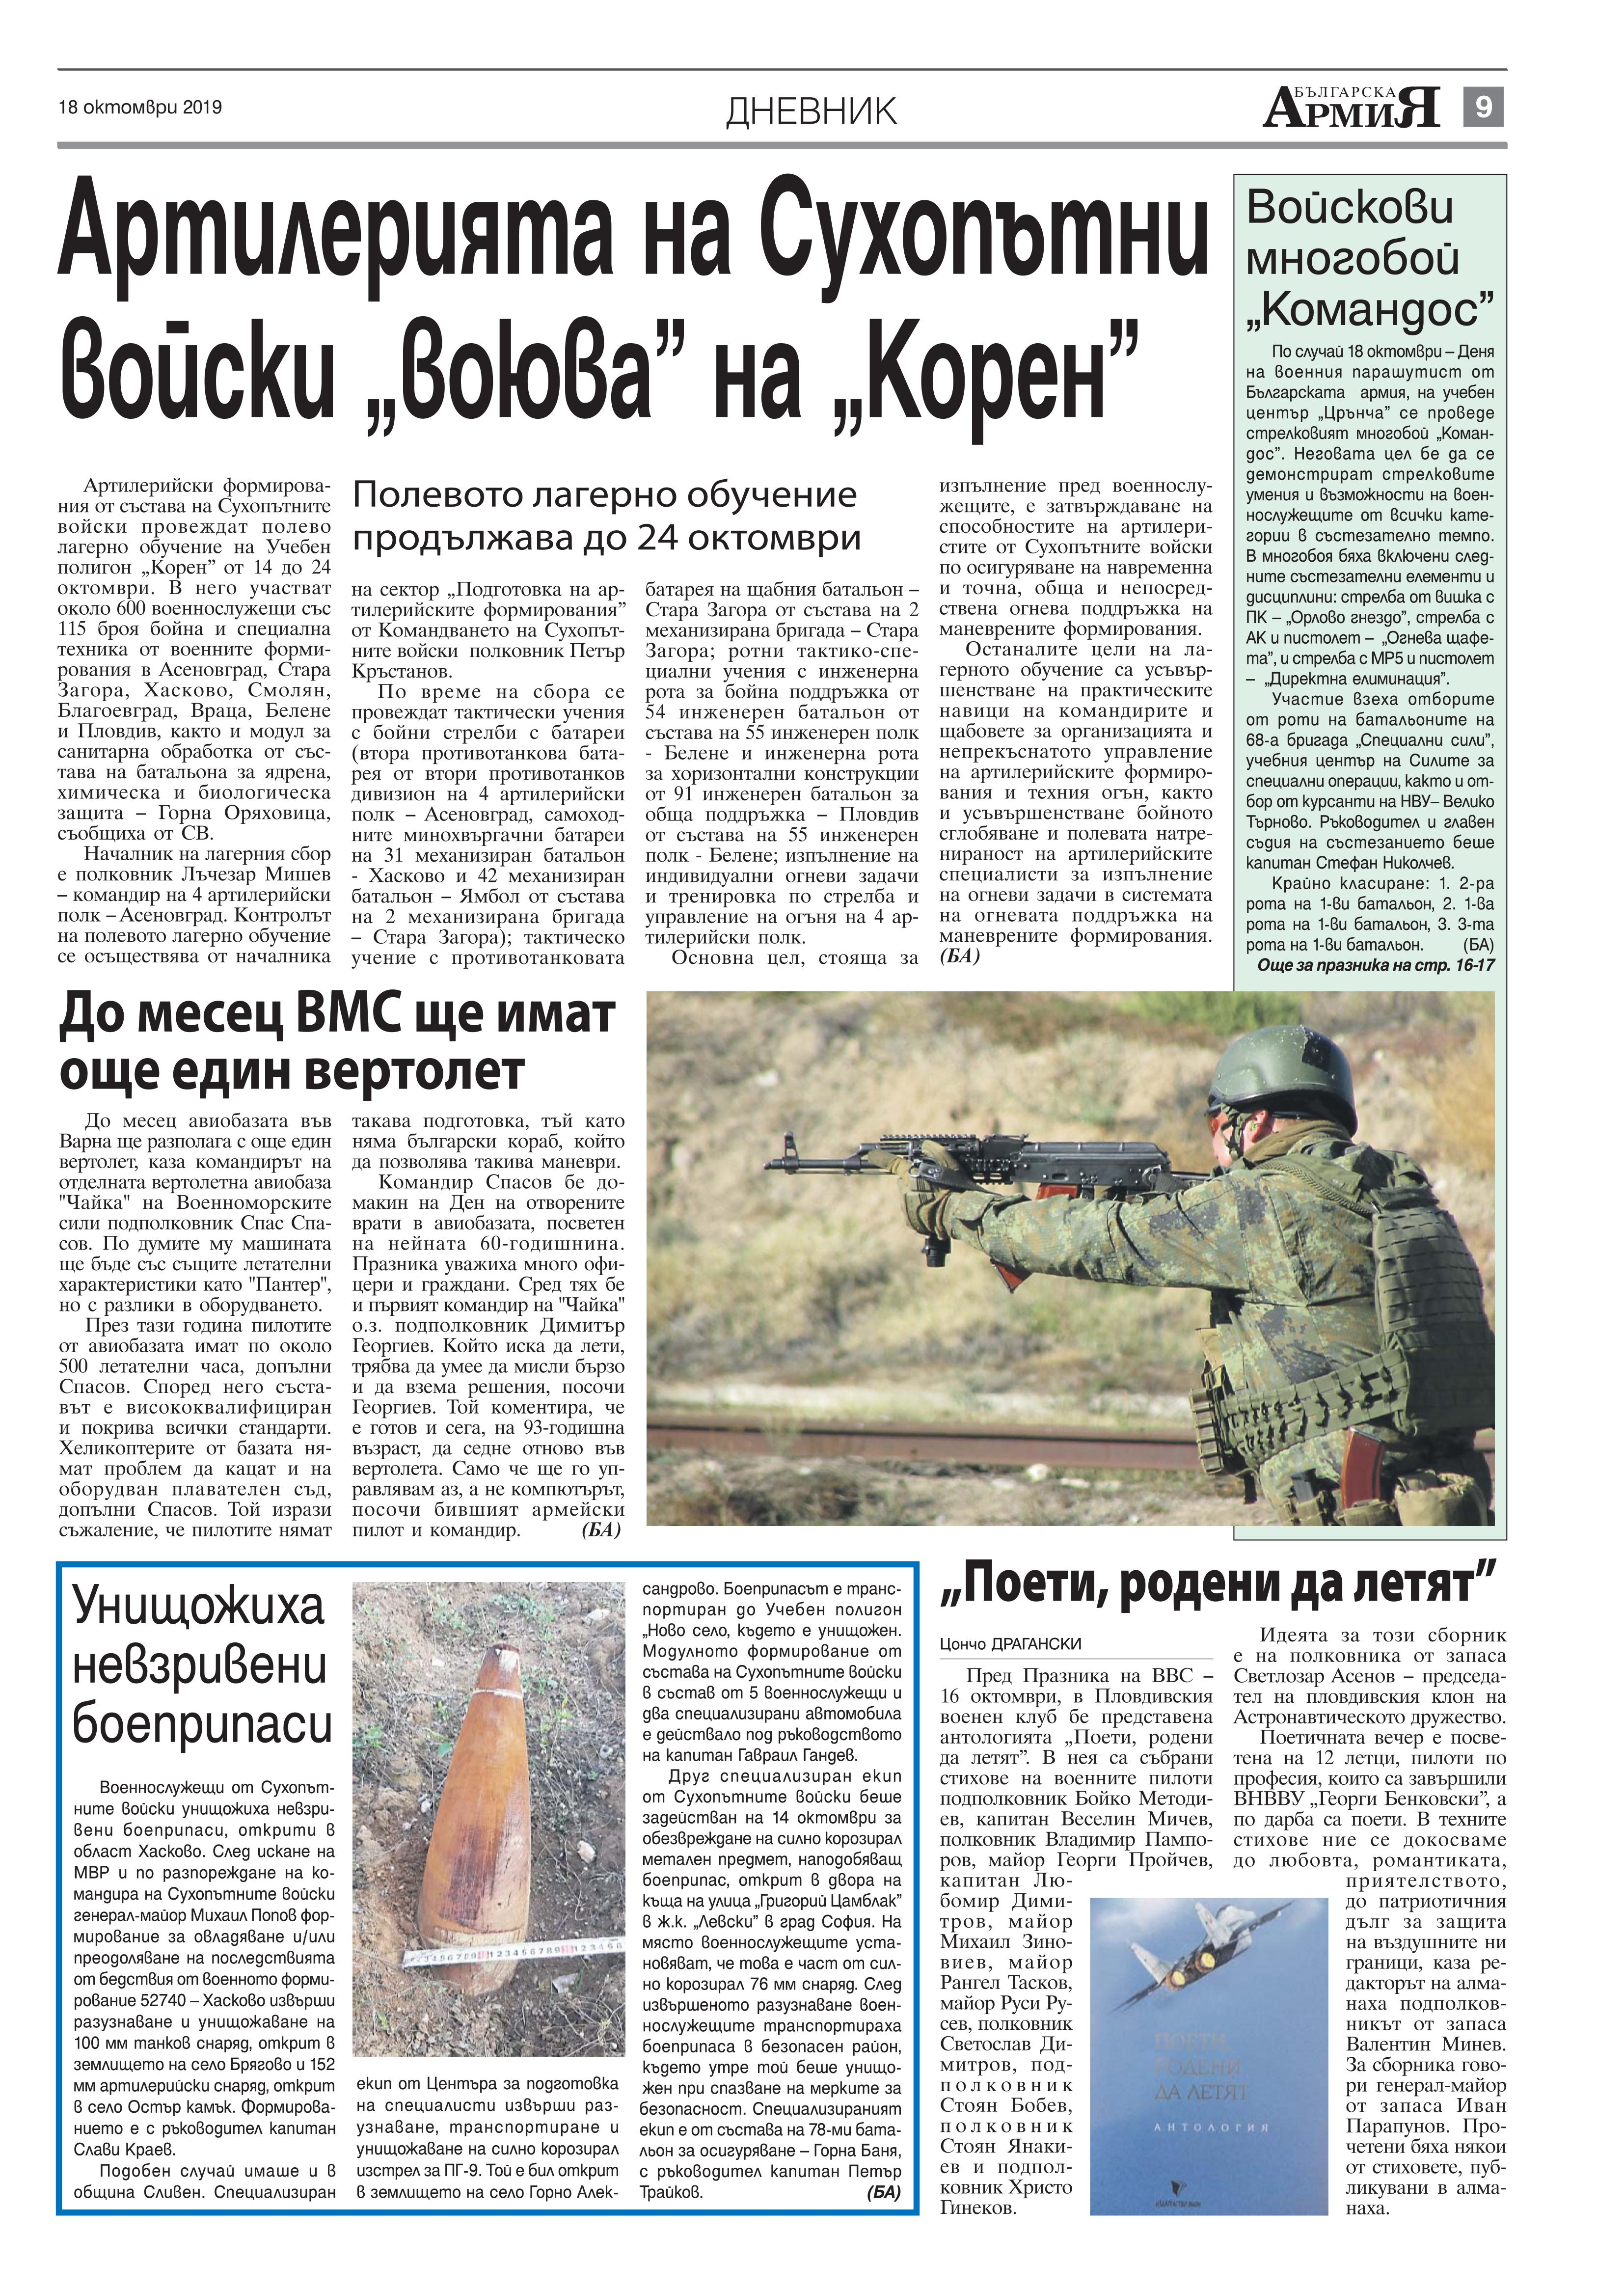 https://www.armymedia.bg/wp-content/uploads/2015/06/09.page1_-110.jpg